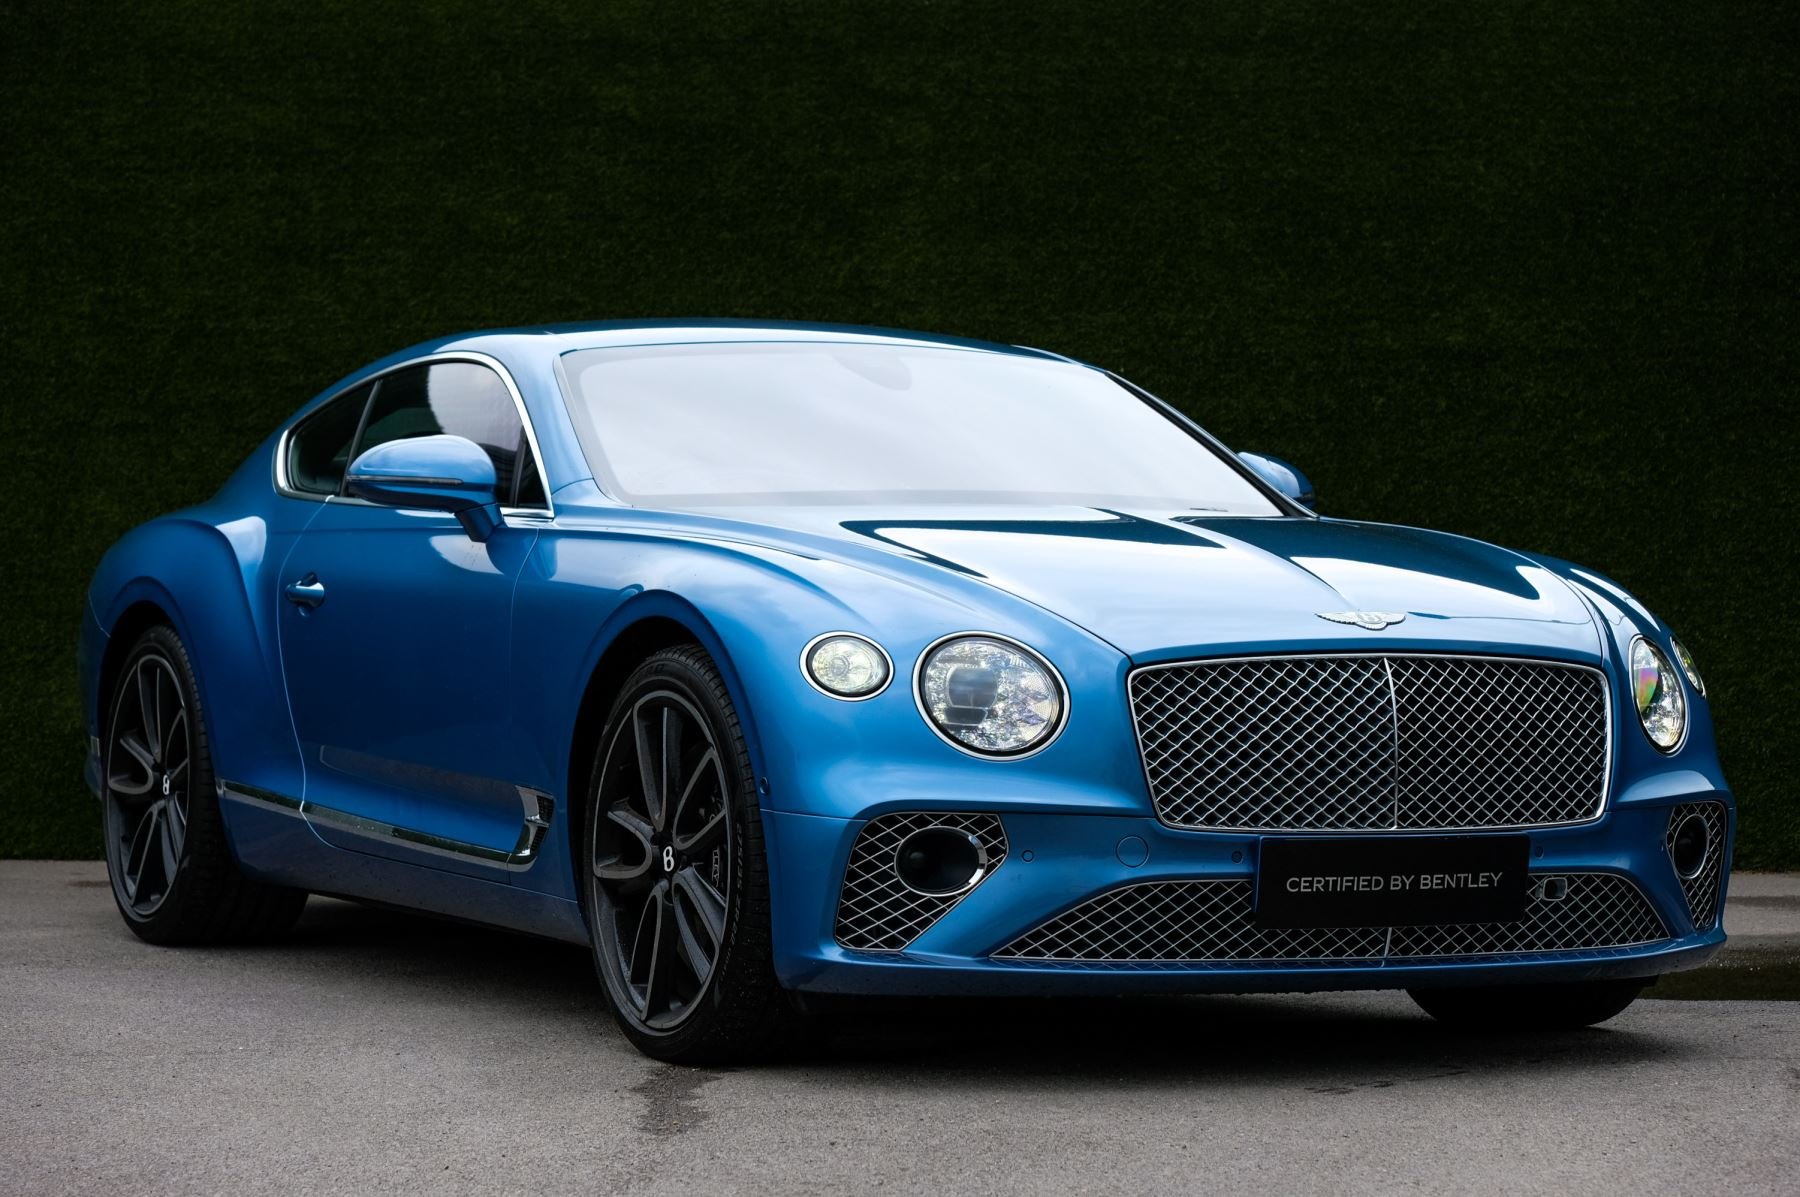 Bentley Continental GT 6.0 W12 - Mulliner Driving Specification Automatic 2 door Coupe